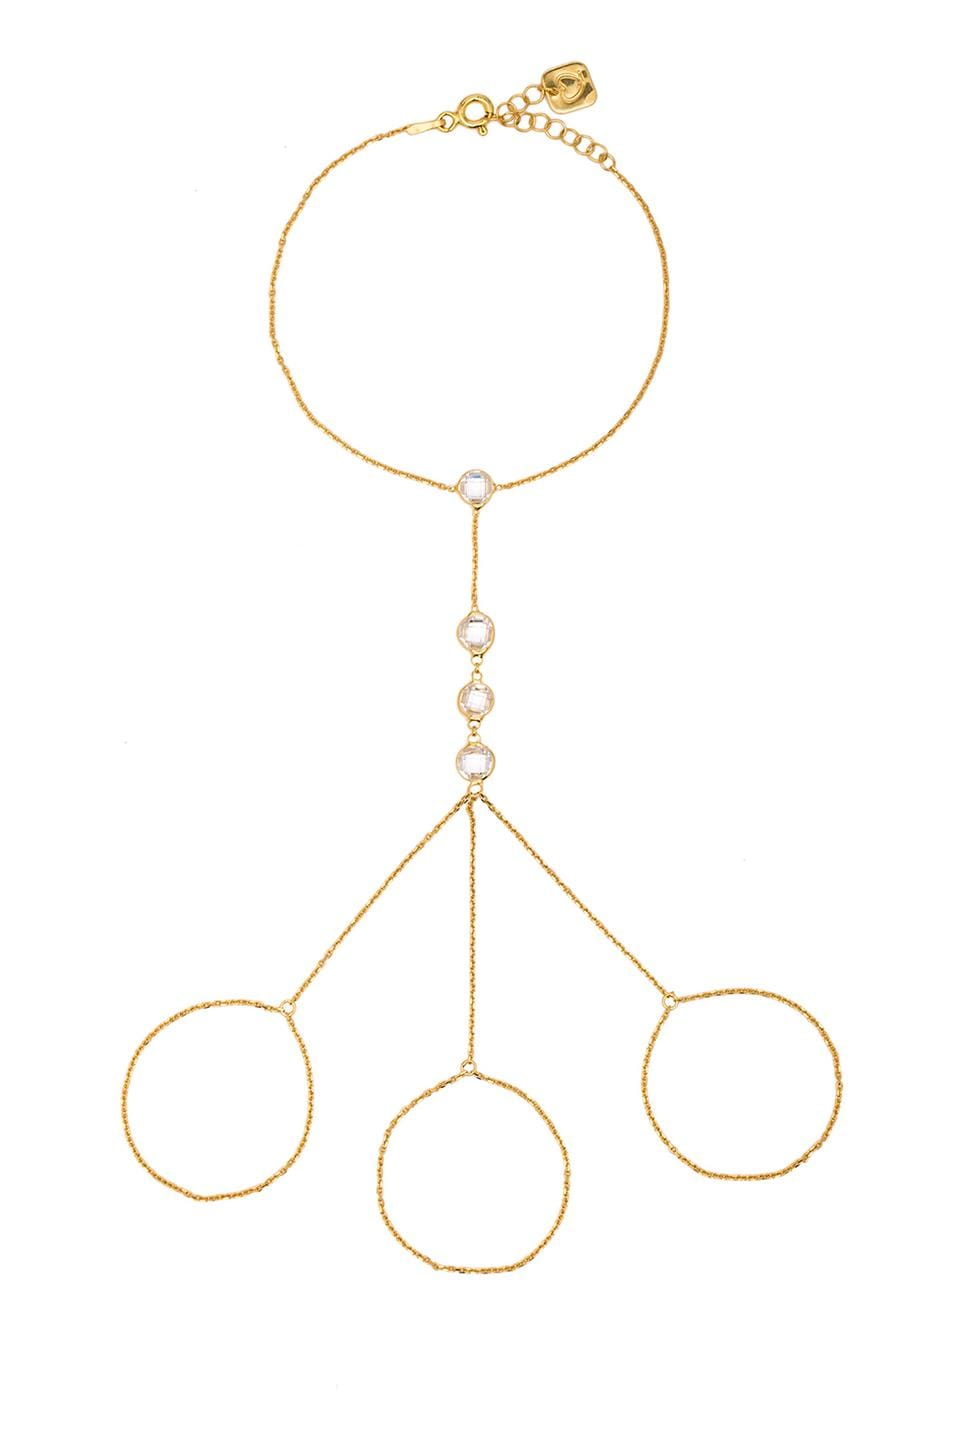 joolz by Martha Calvo 3 Finger Handchain in Gold